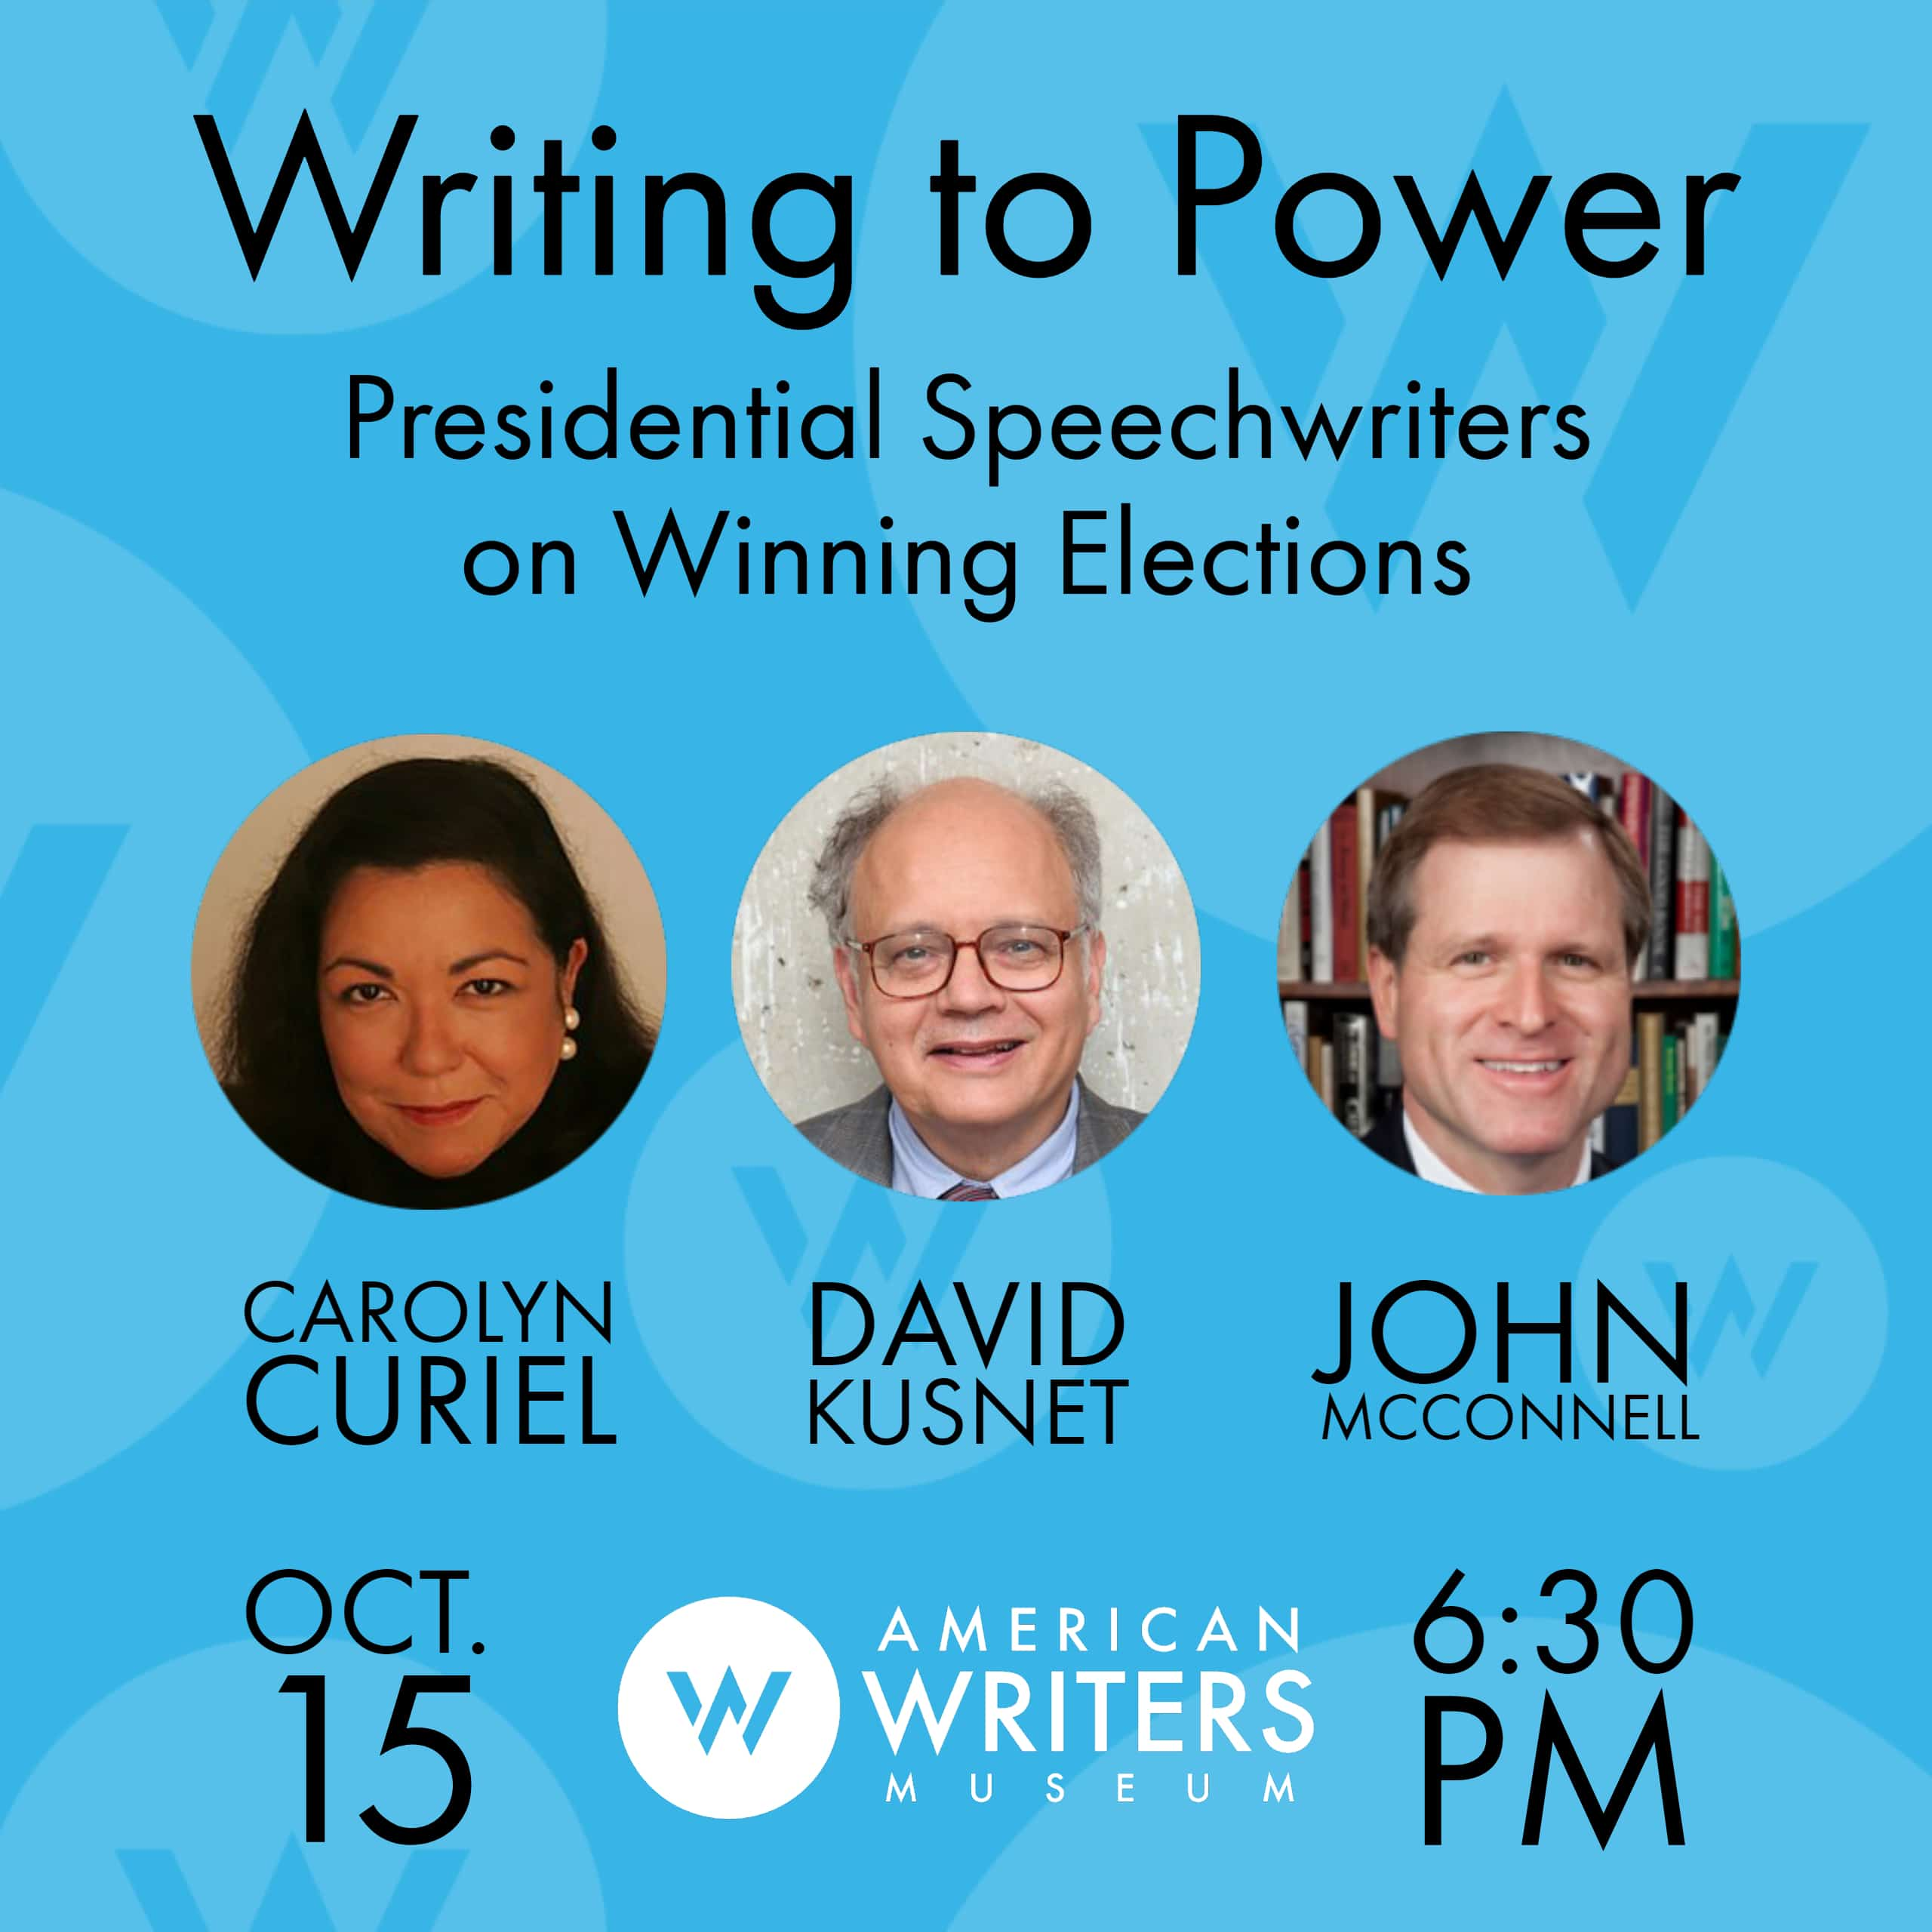 Presidential speechwriters discuss writing to win elections